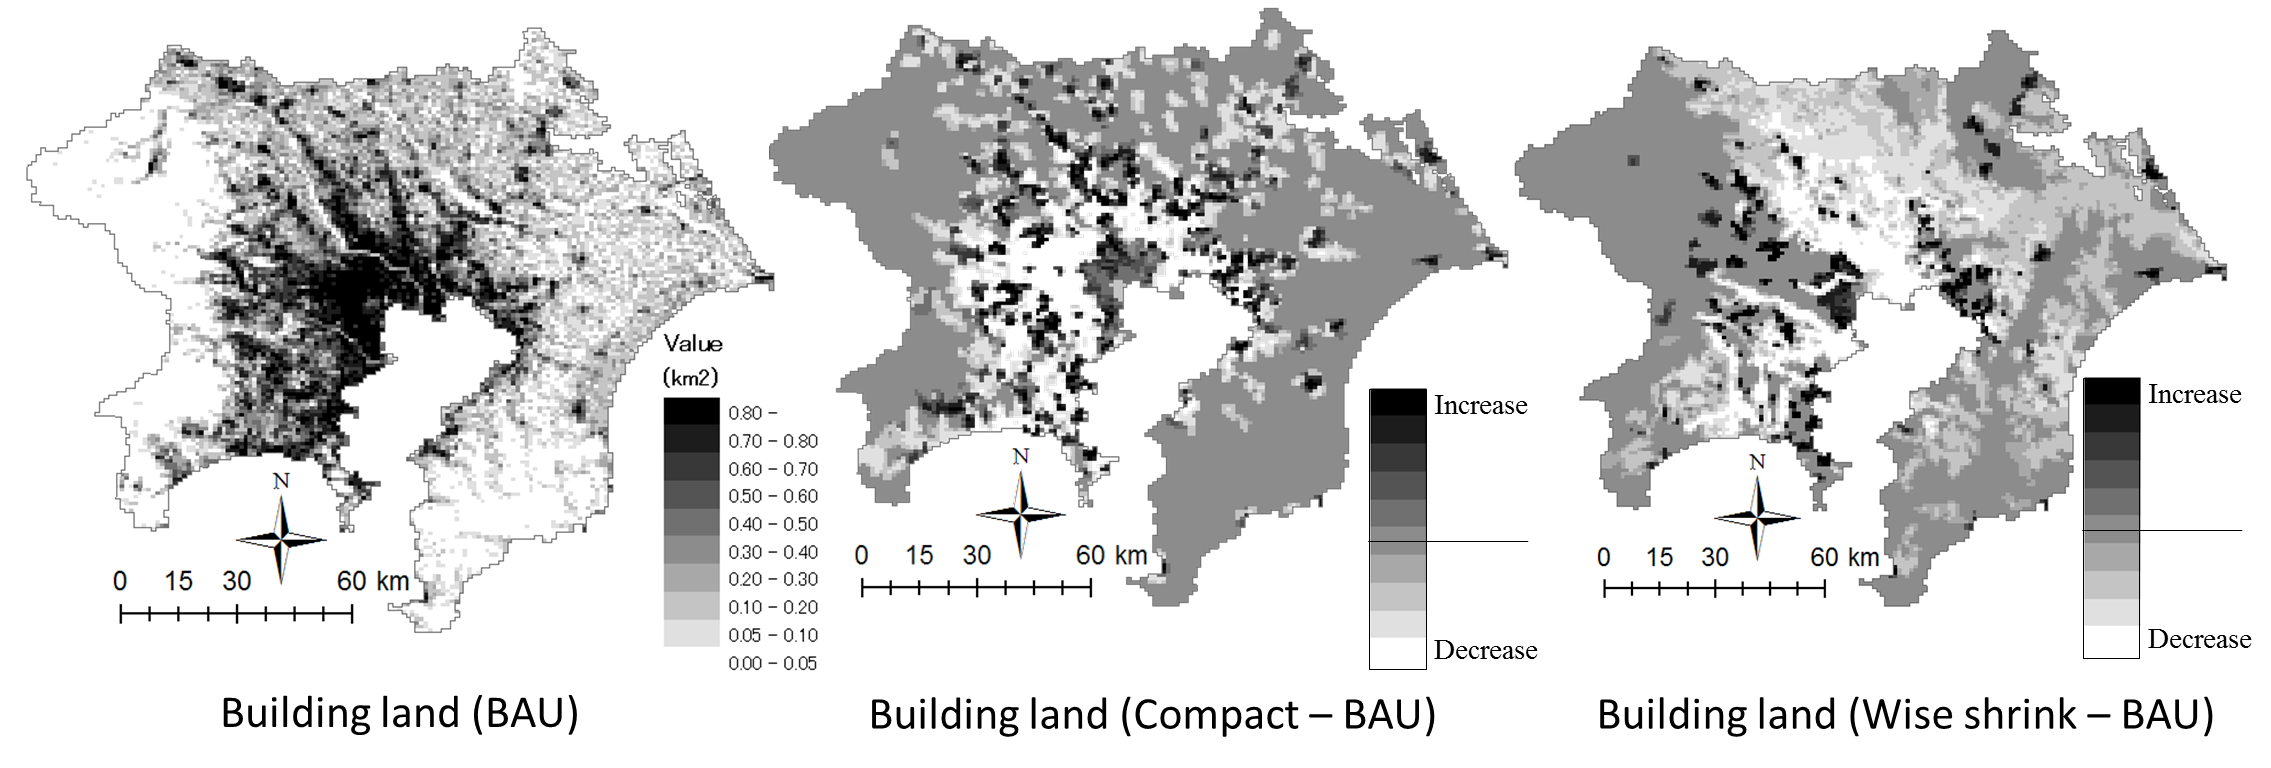 How to shrink a png 112 x 112 to be 25kb. Spatially explicit scenario for